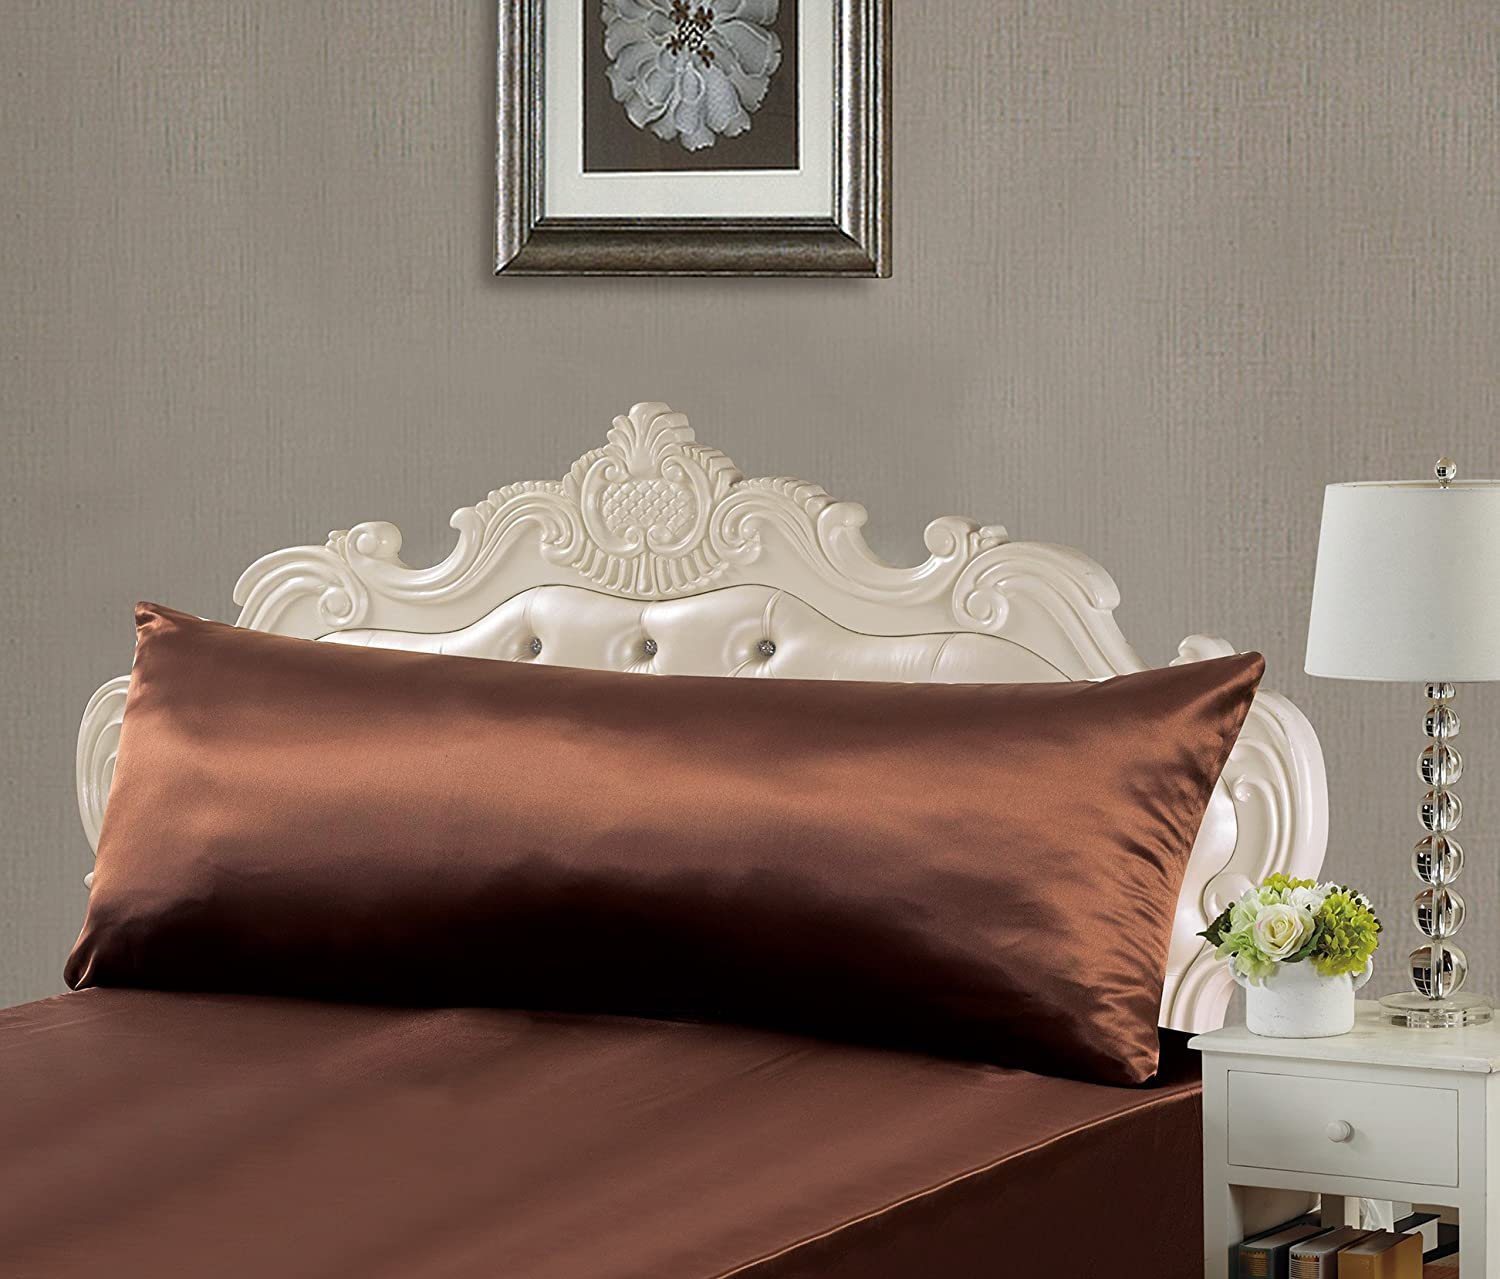 EliteHomeProducts EHP Super Soft & Silky Satin Body Pillowcase With Zipper (20